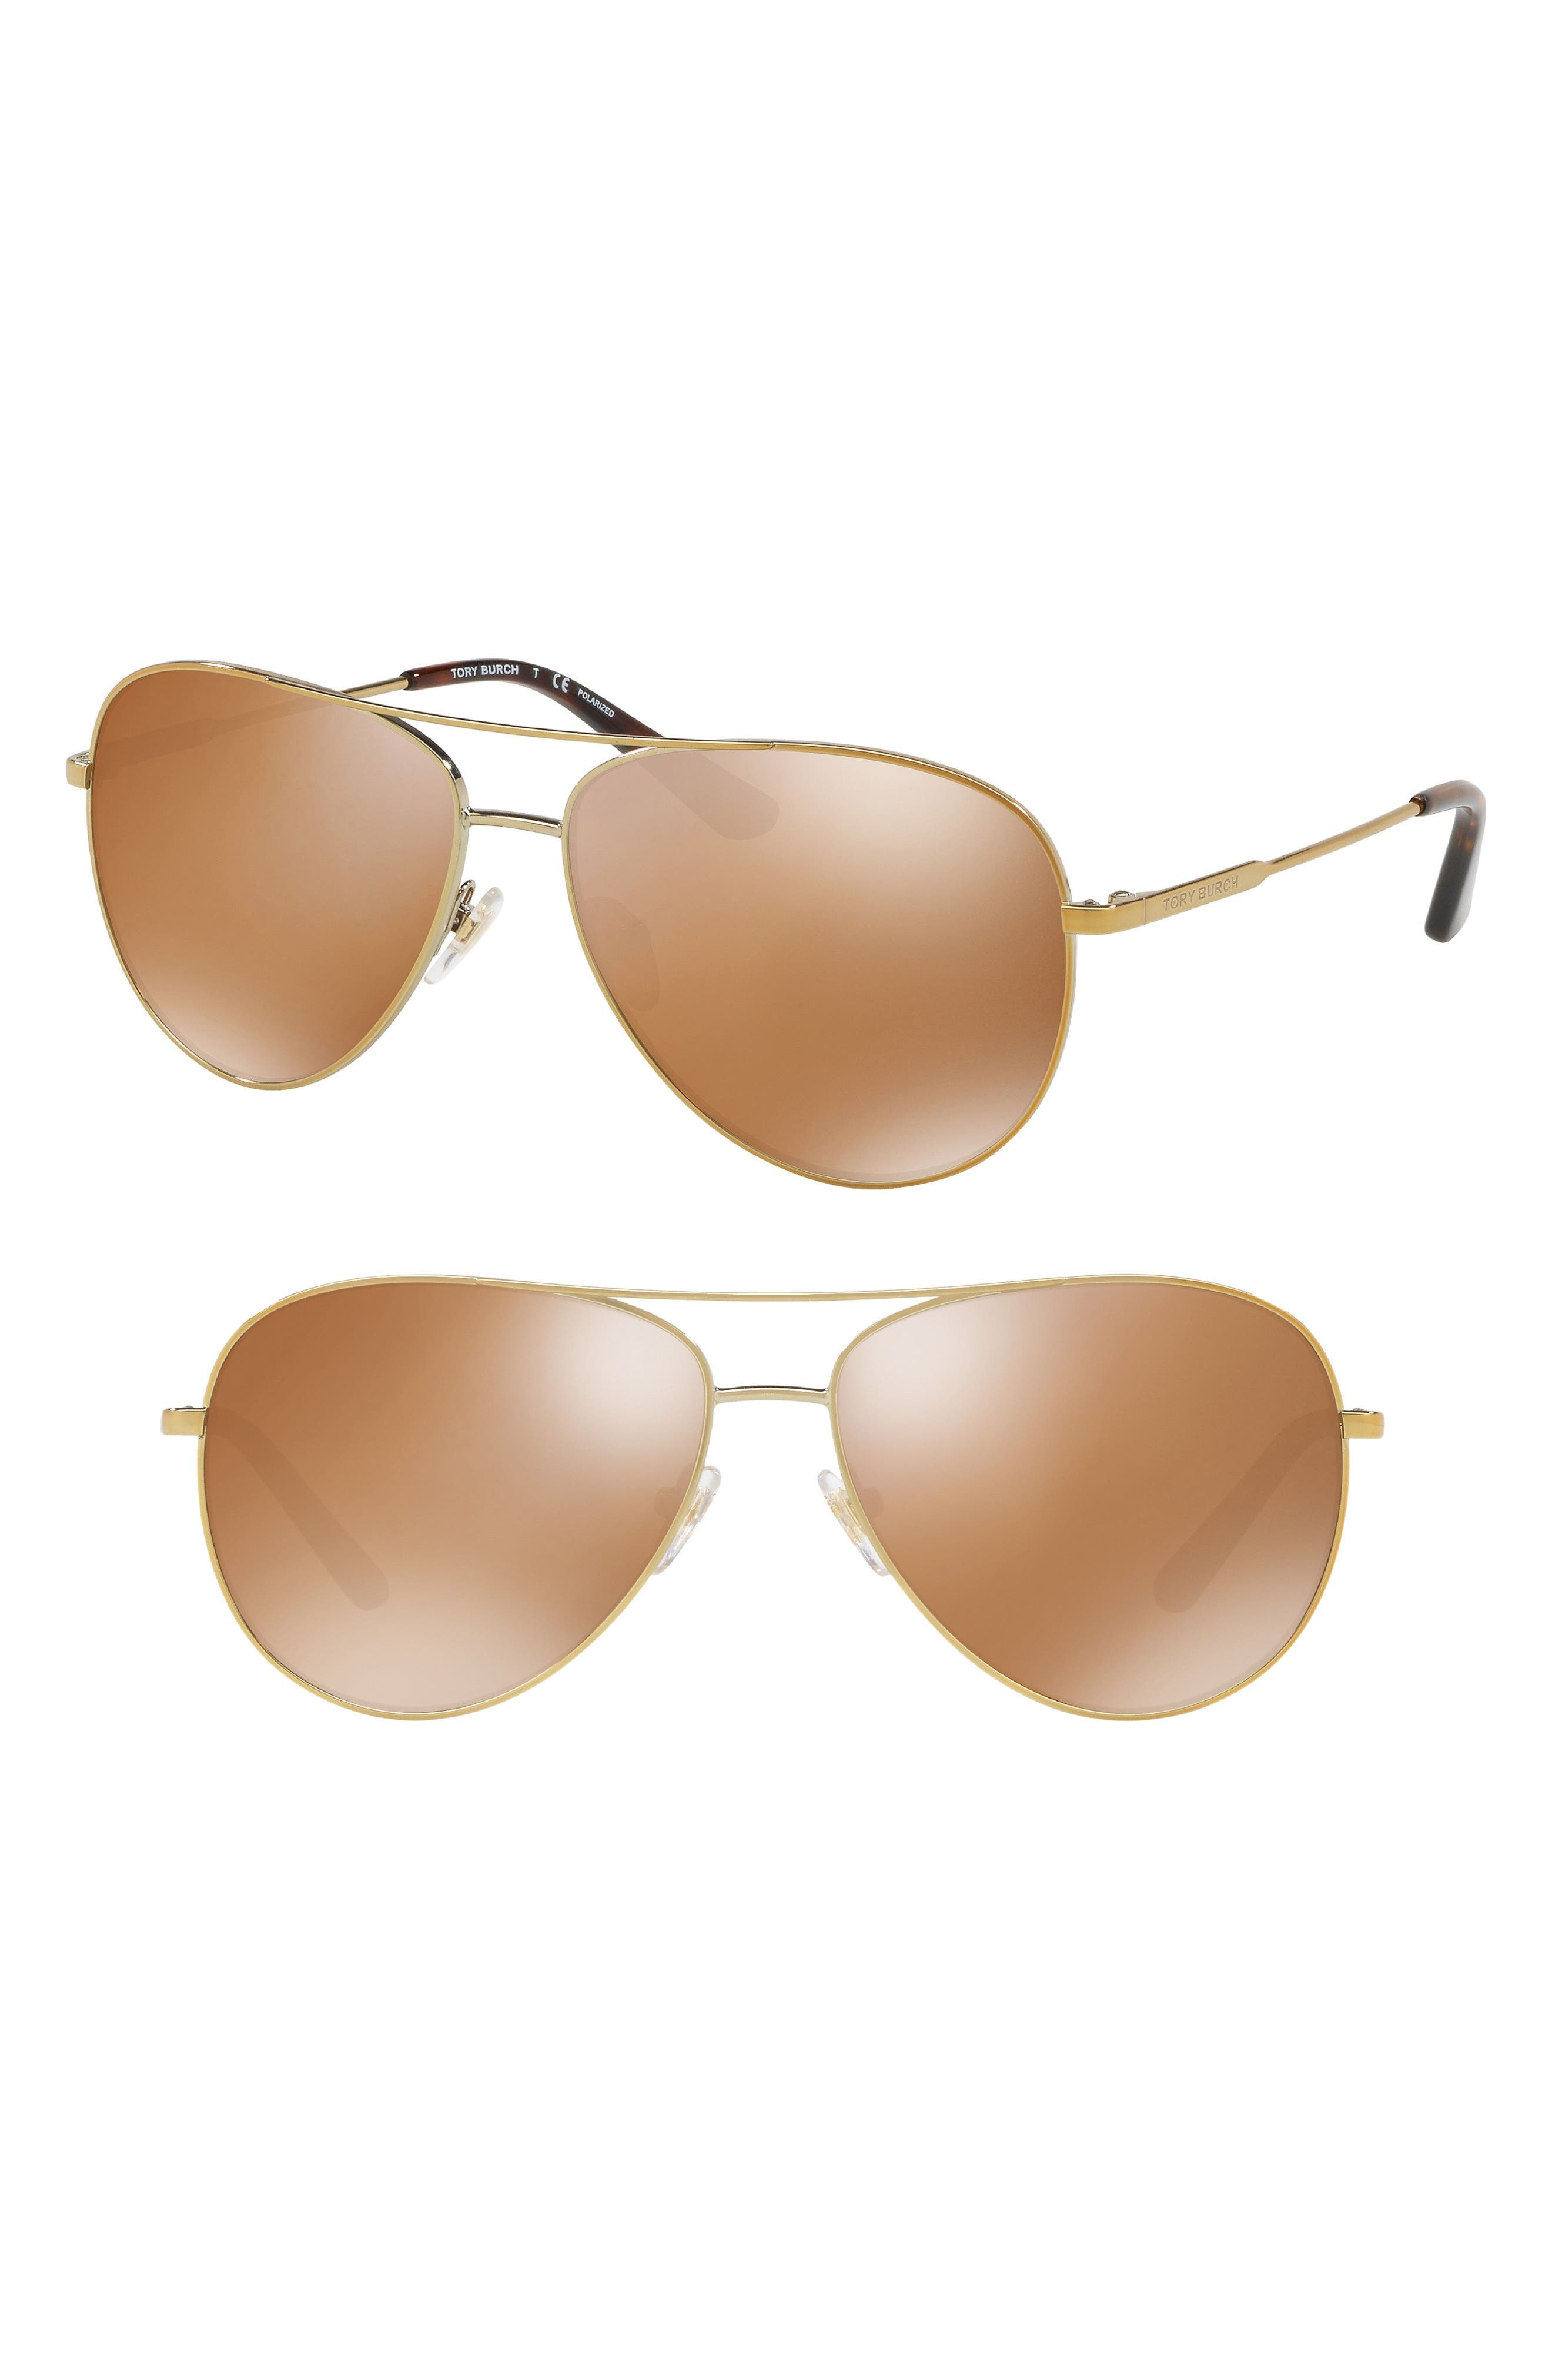 59mm Thin Polarized Metal Aviator Sunglasses,                             Main thumbnail 1, color,                             BROWN/ GOLD